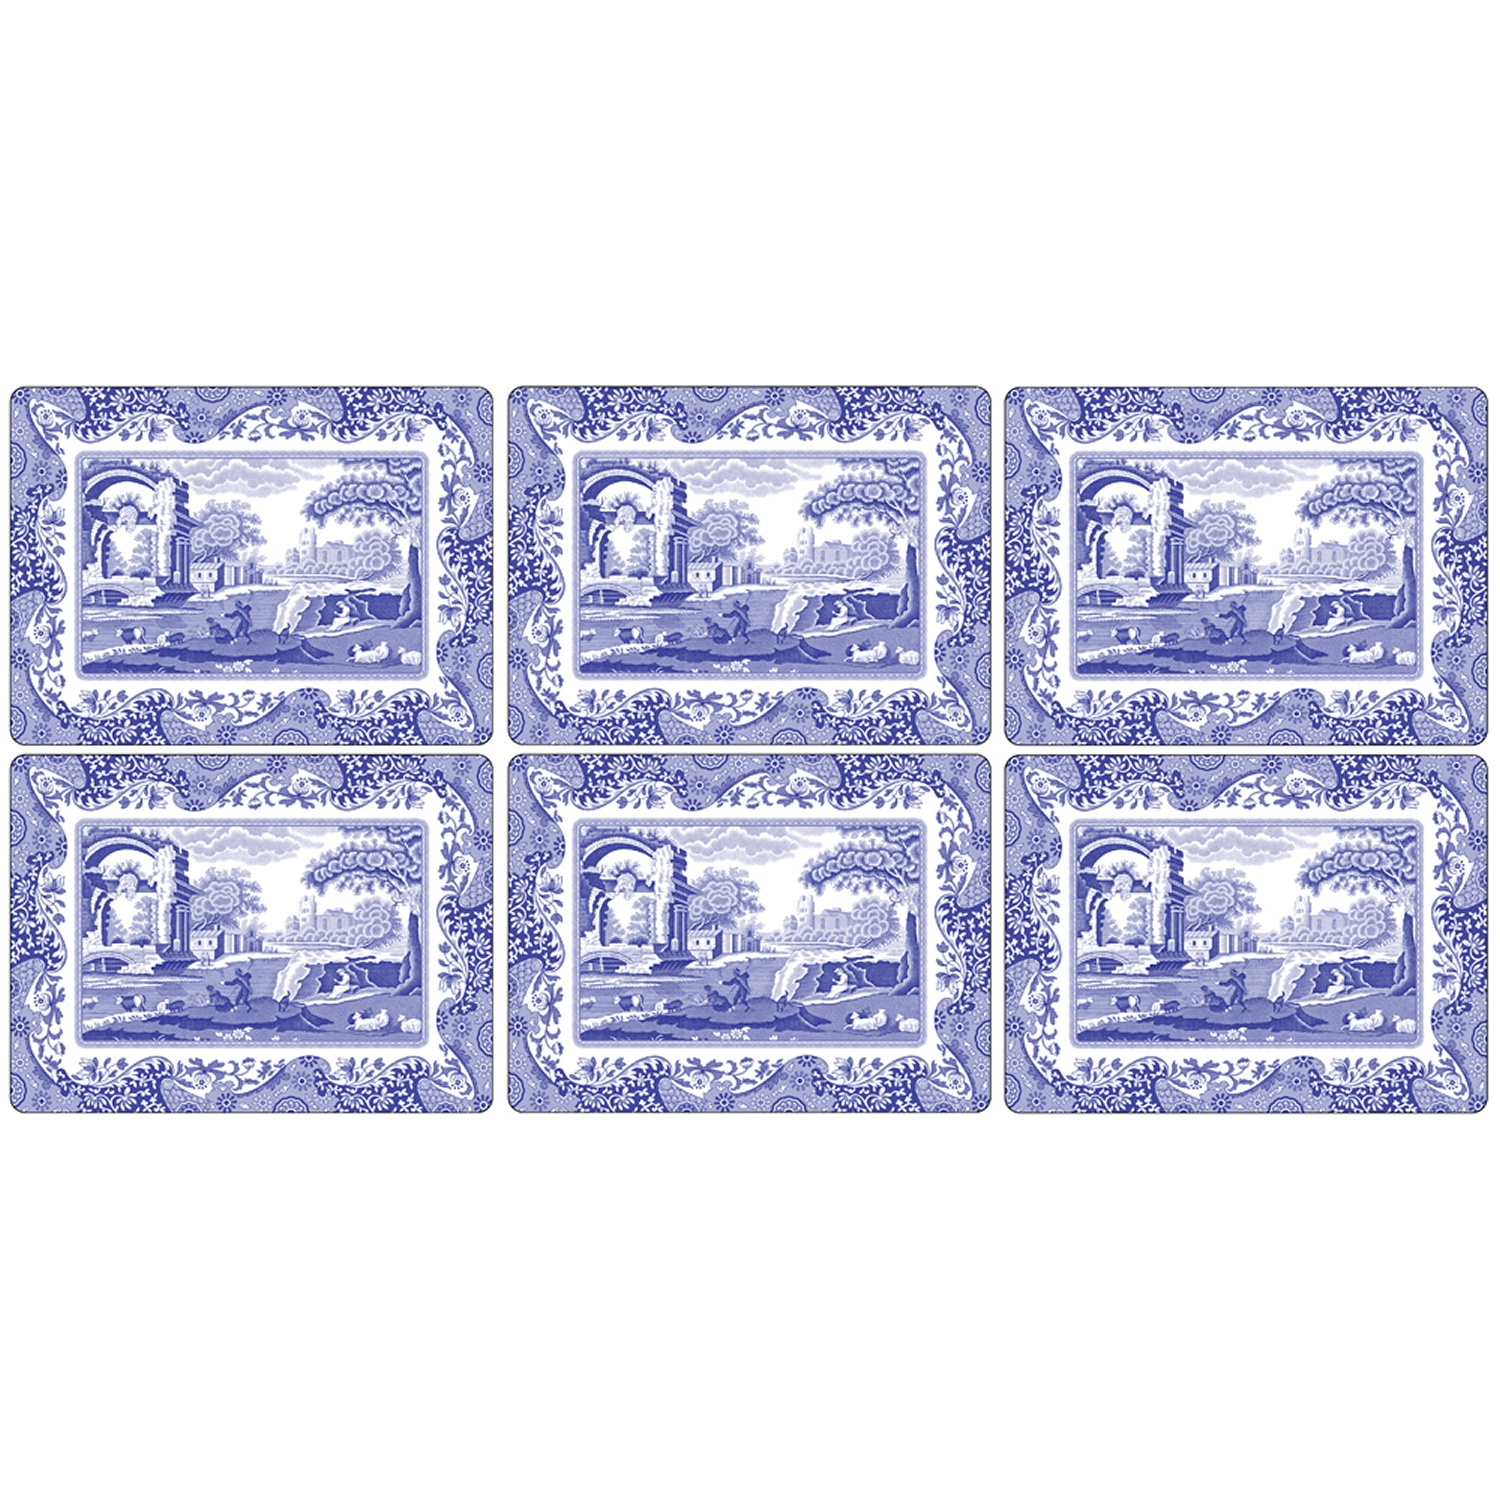 Blue Italian bordstablett 30x23, 6-pack